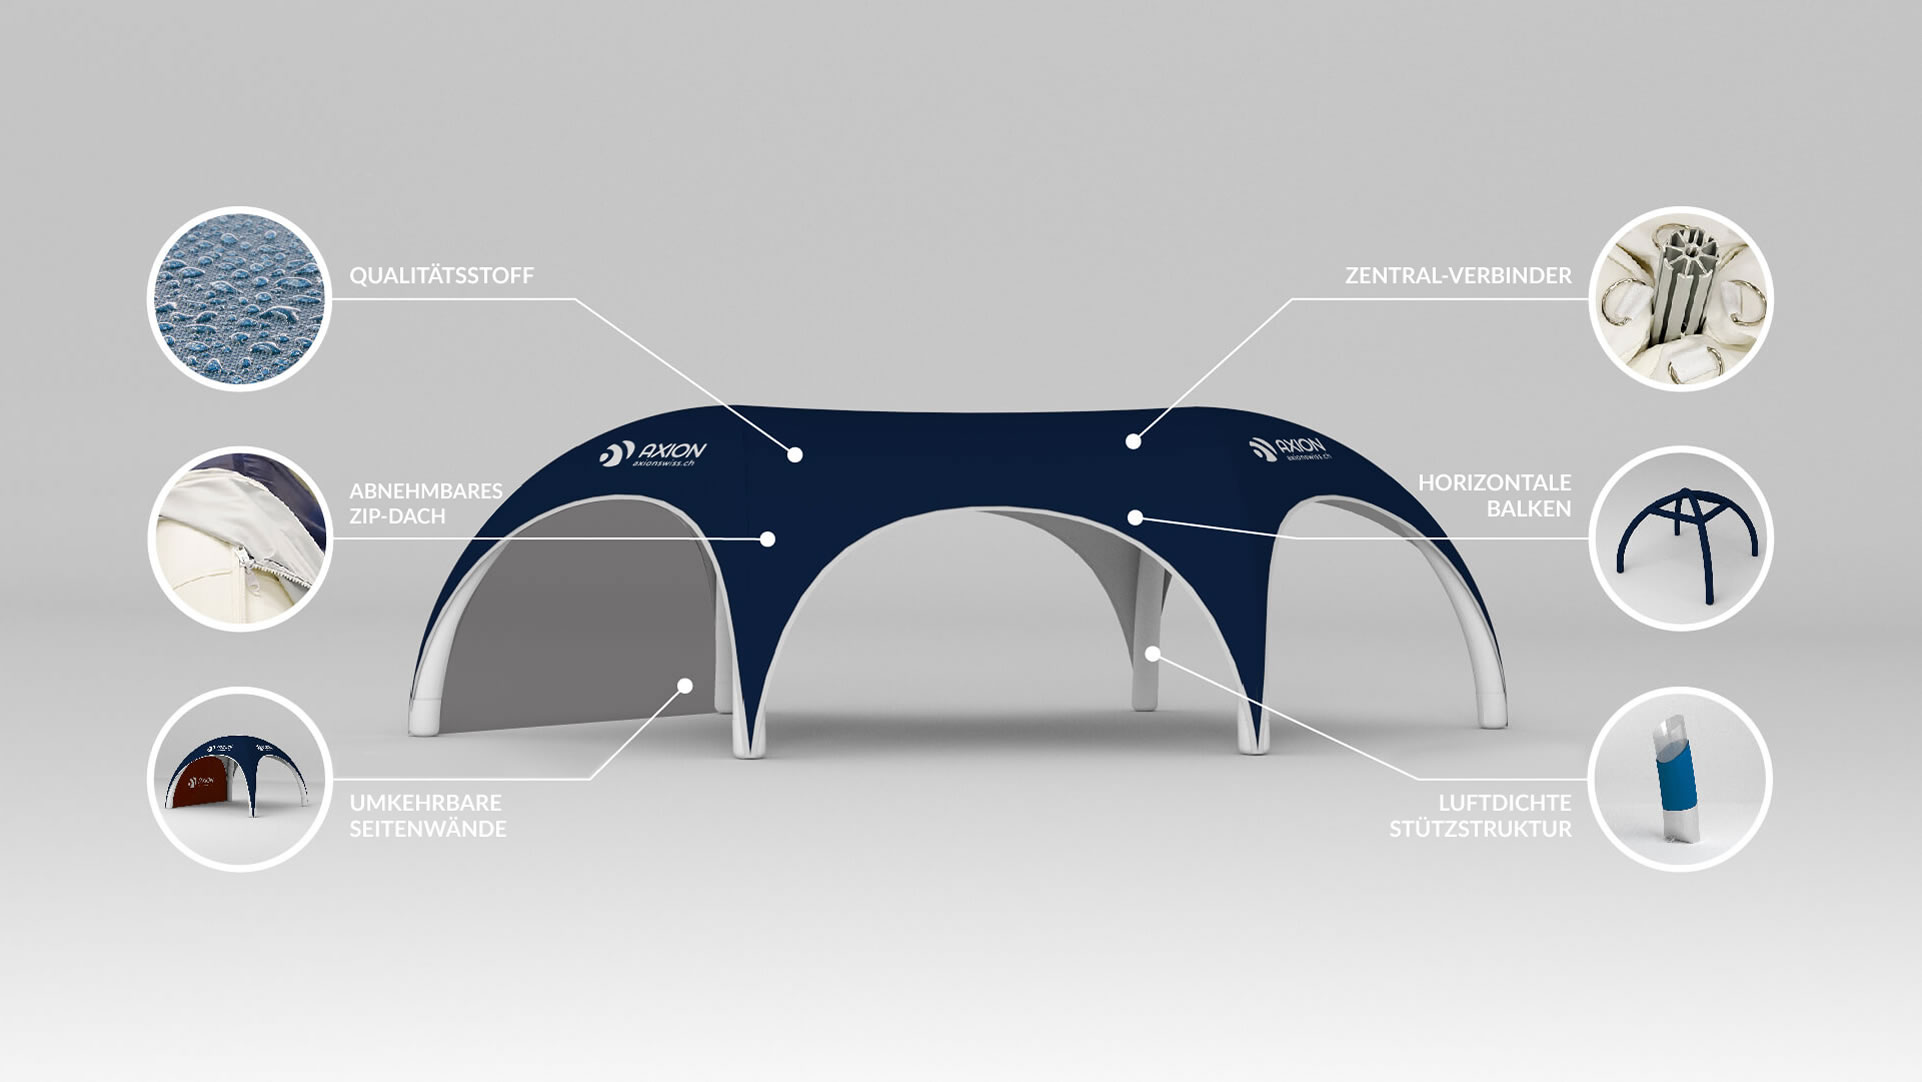 axion-hexa-tent_main-feature